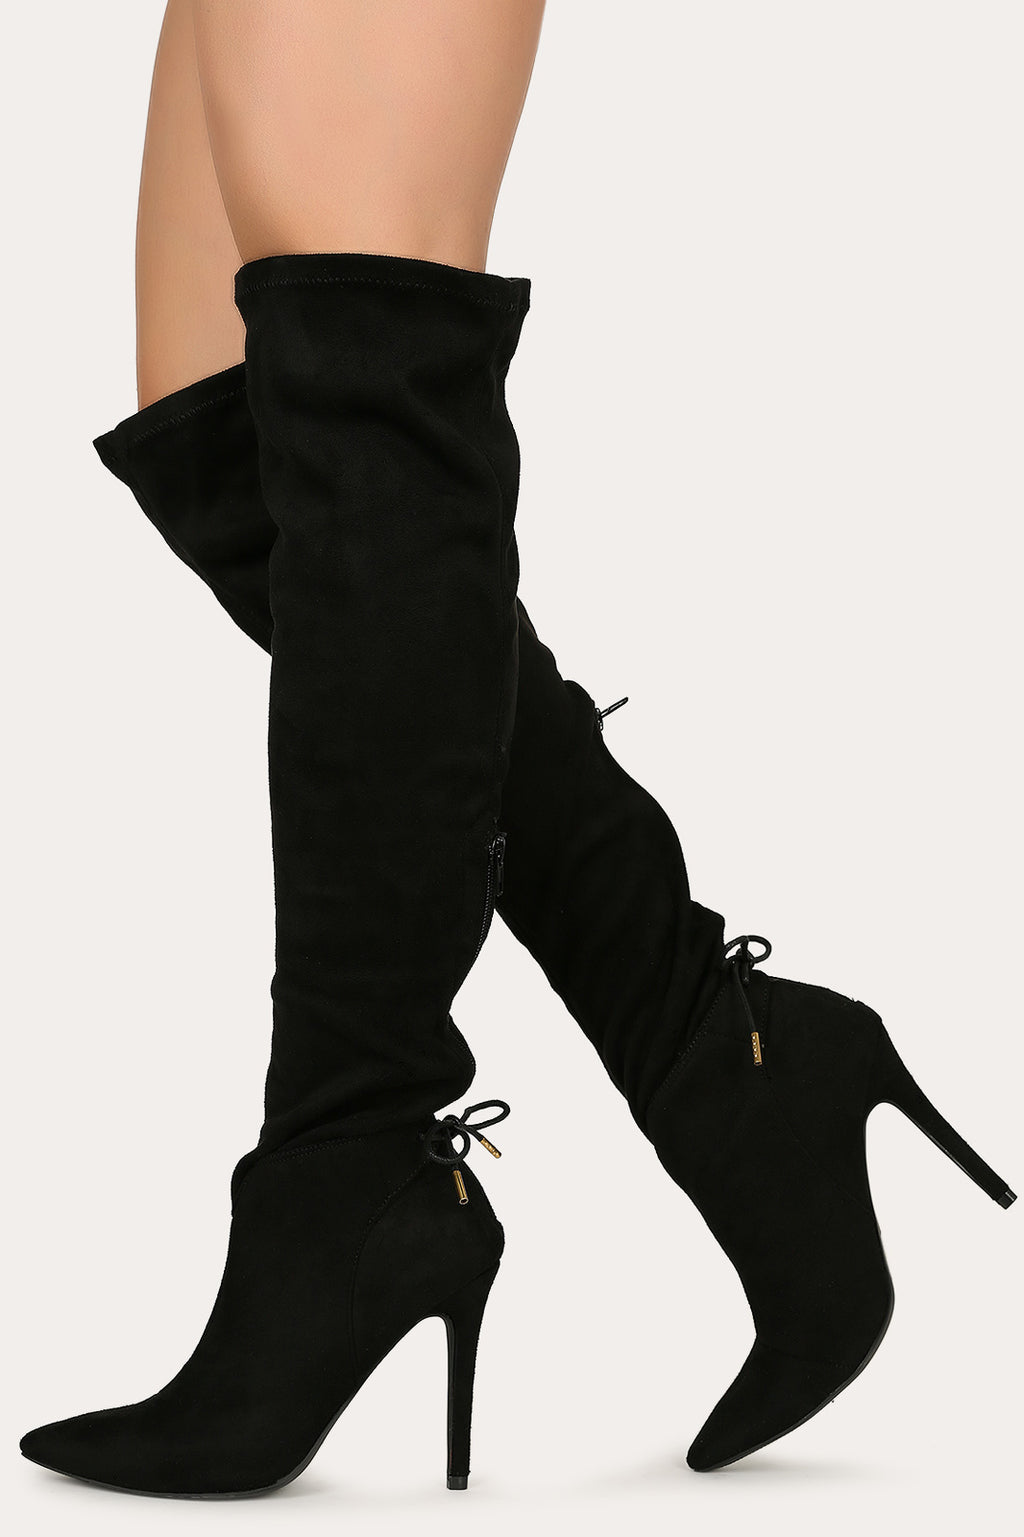 Hot Affair - Black Stiletto Boots